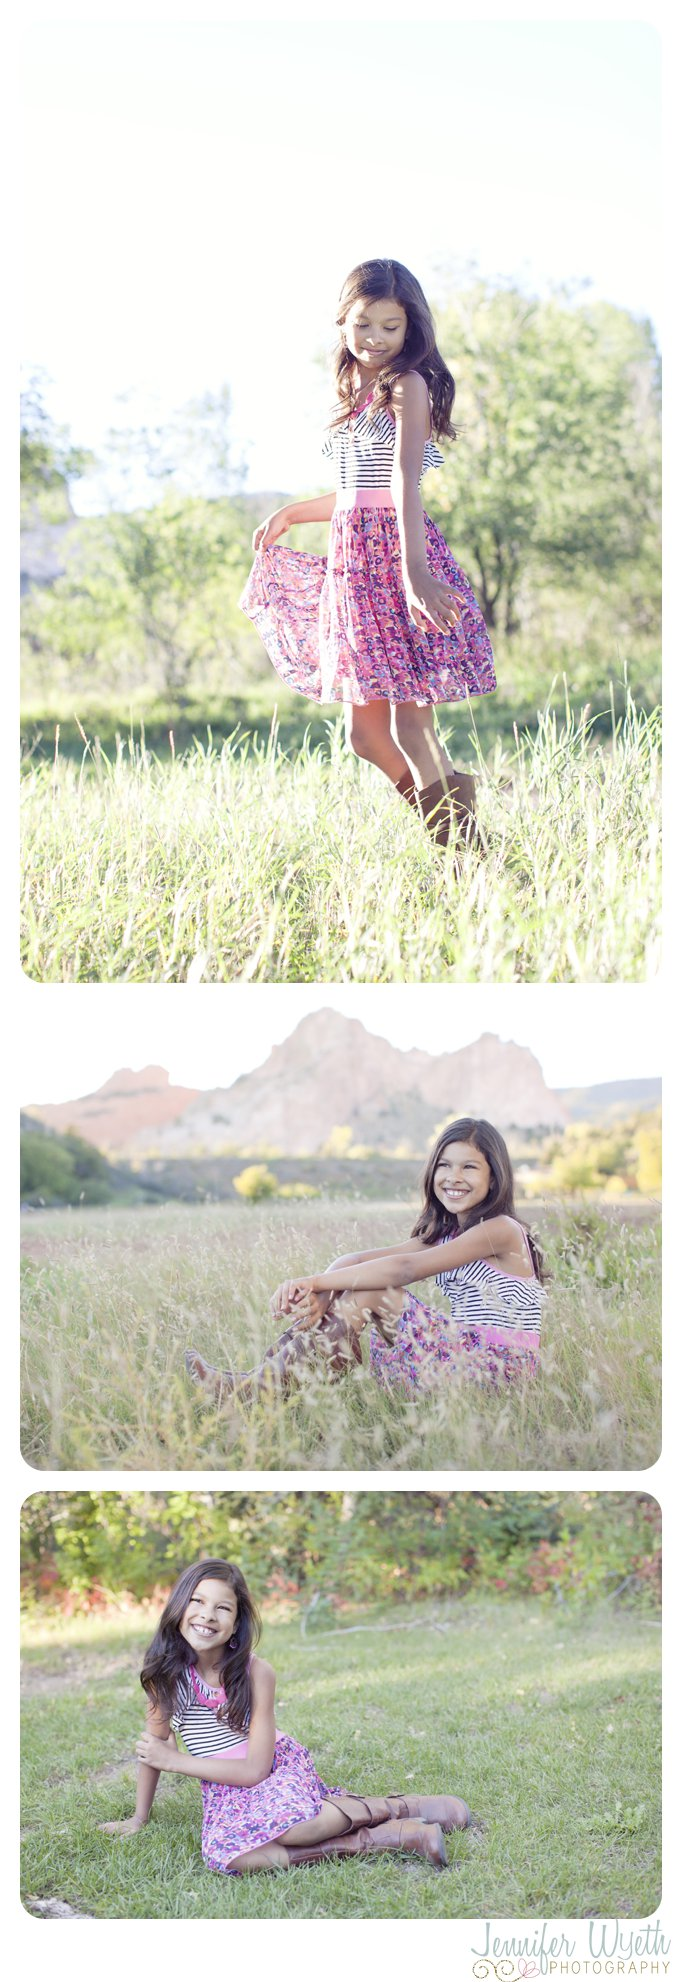 girl spins and sits in a field with Garden of the Gods in the background